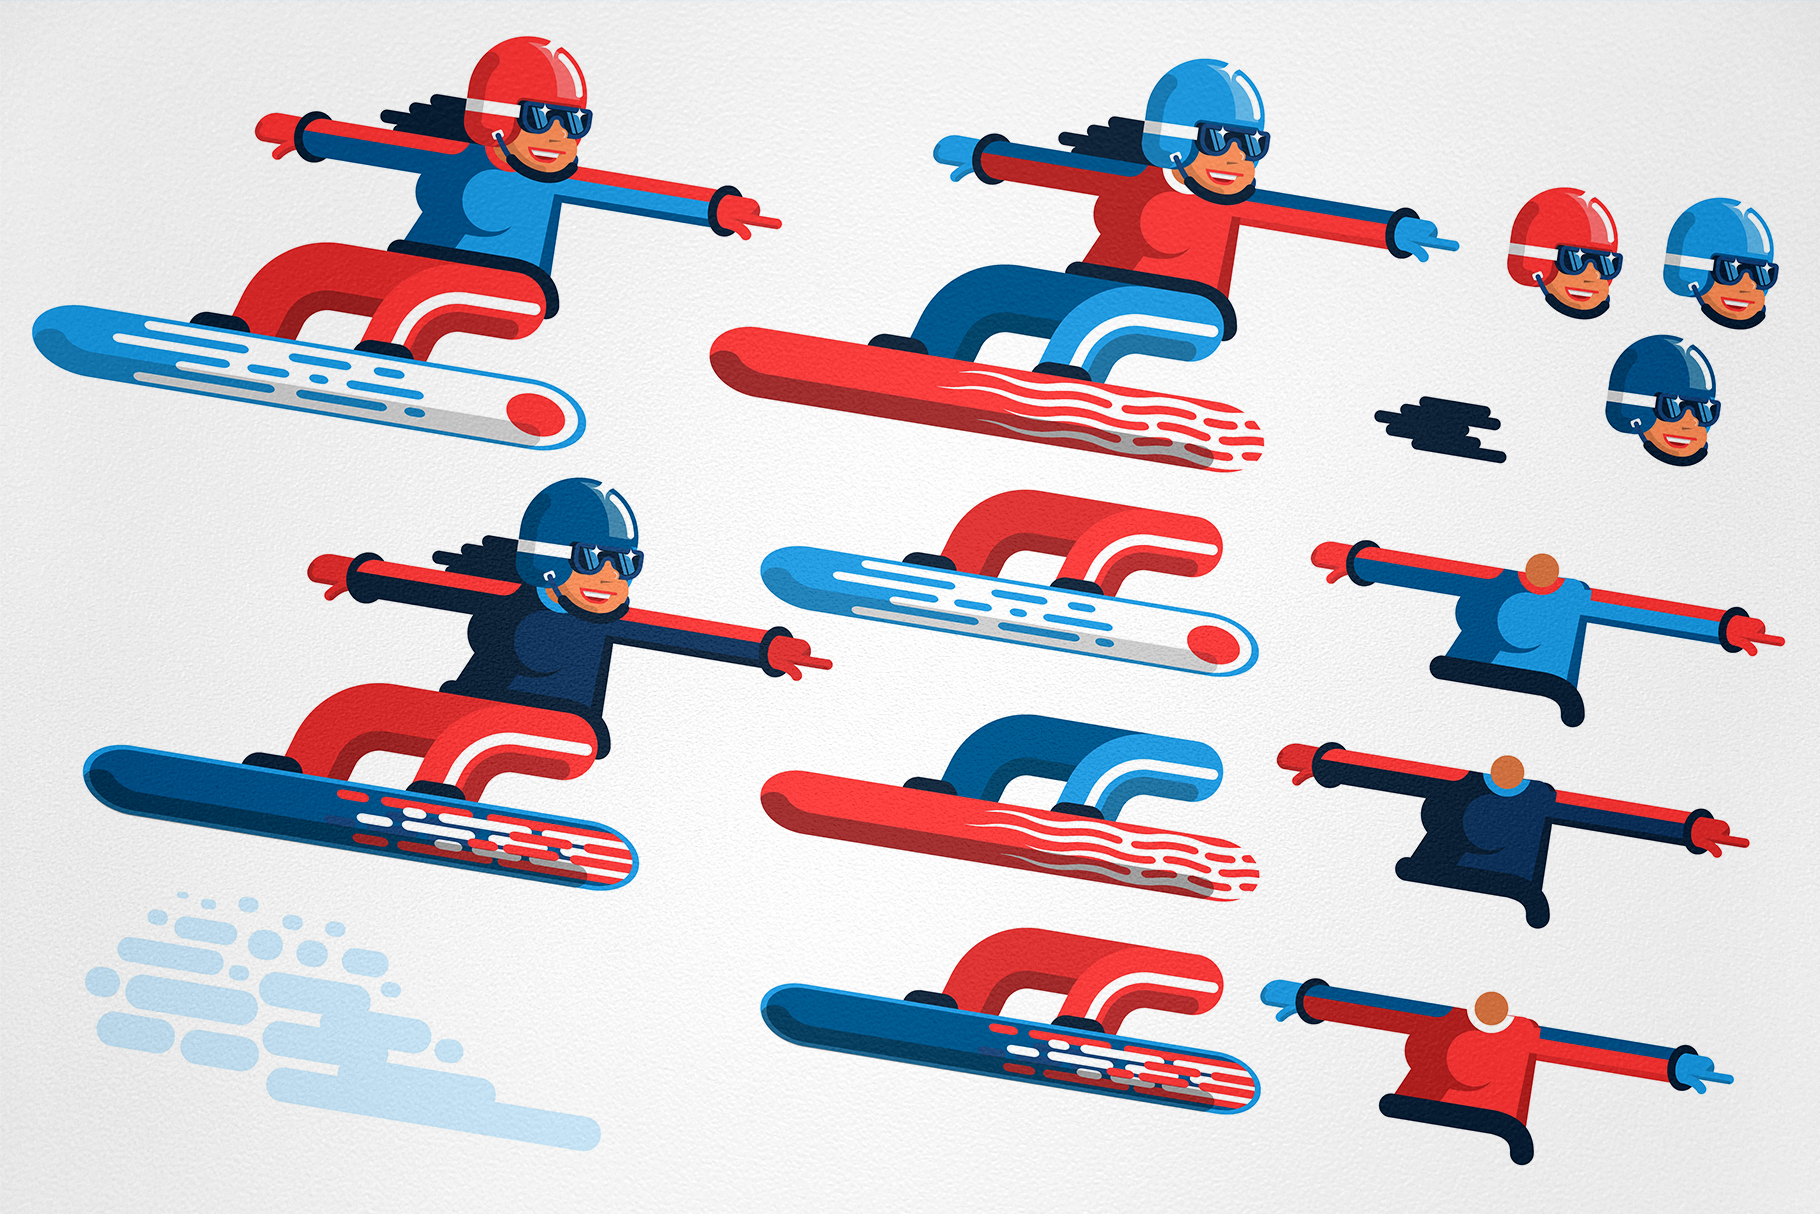 Snowboarding People example image 3